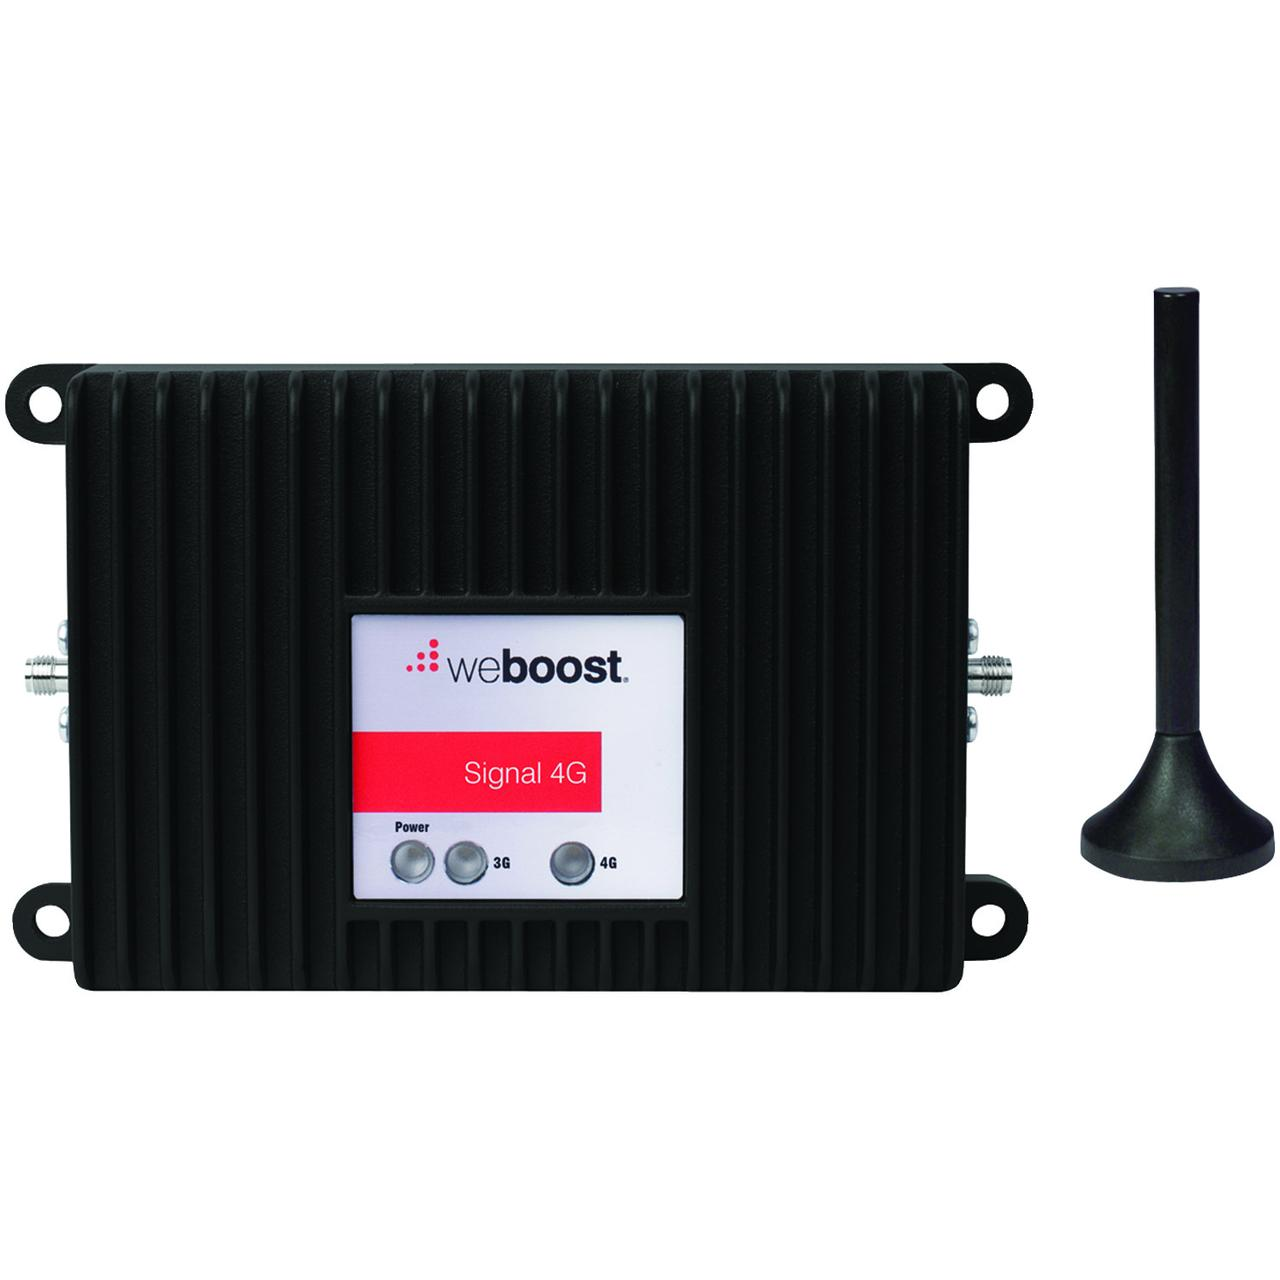 weBoost 460119 Signal 4G In-Building Cellular Signal-Booster Kit